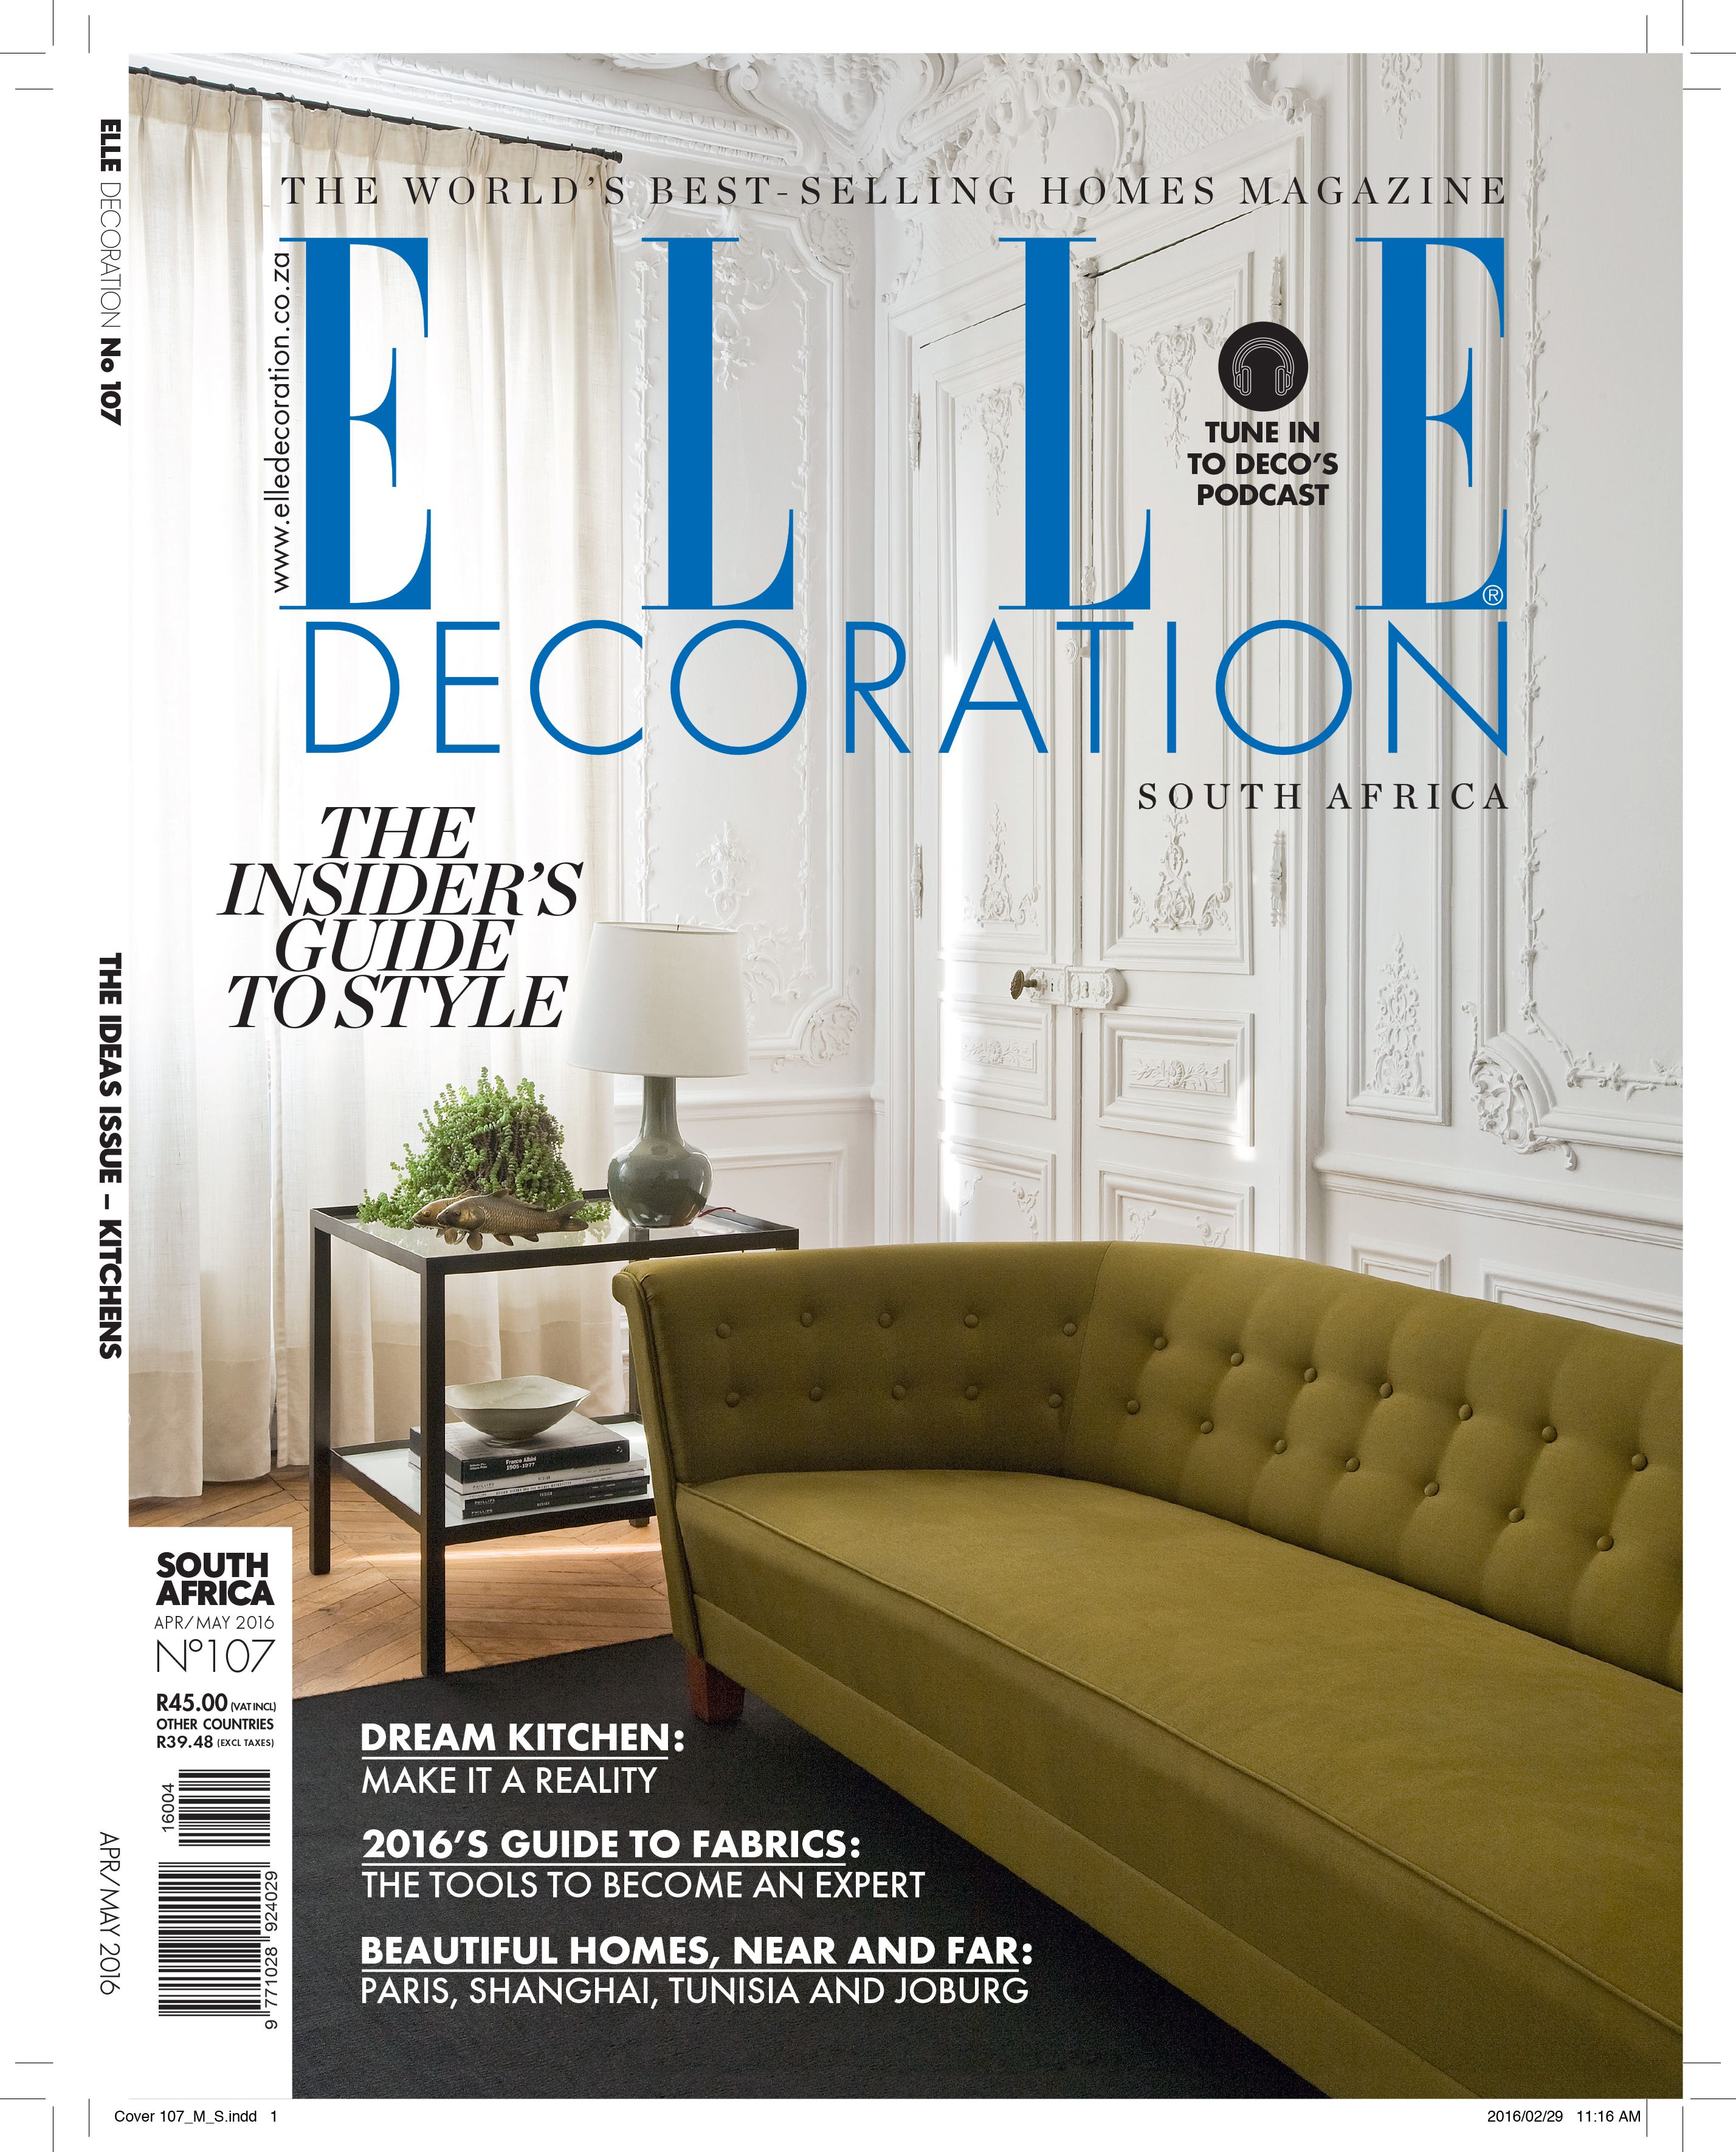 Elle Decoration South Africa Elle Decoration South Africa Issue 107 Editor Bielle